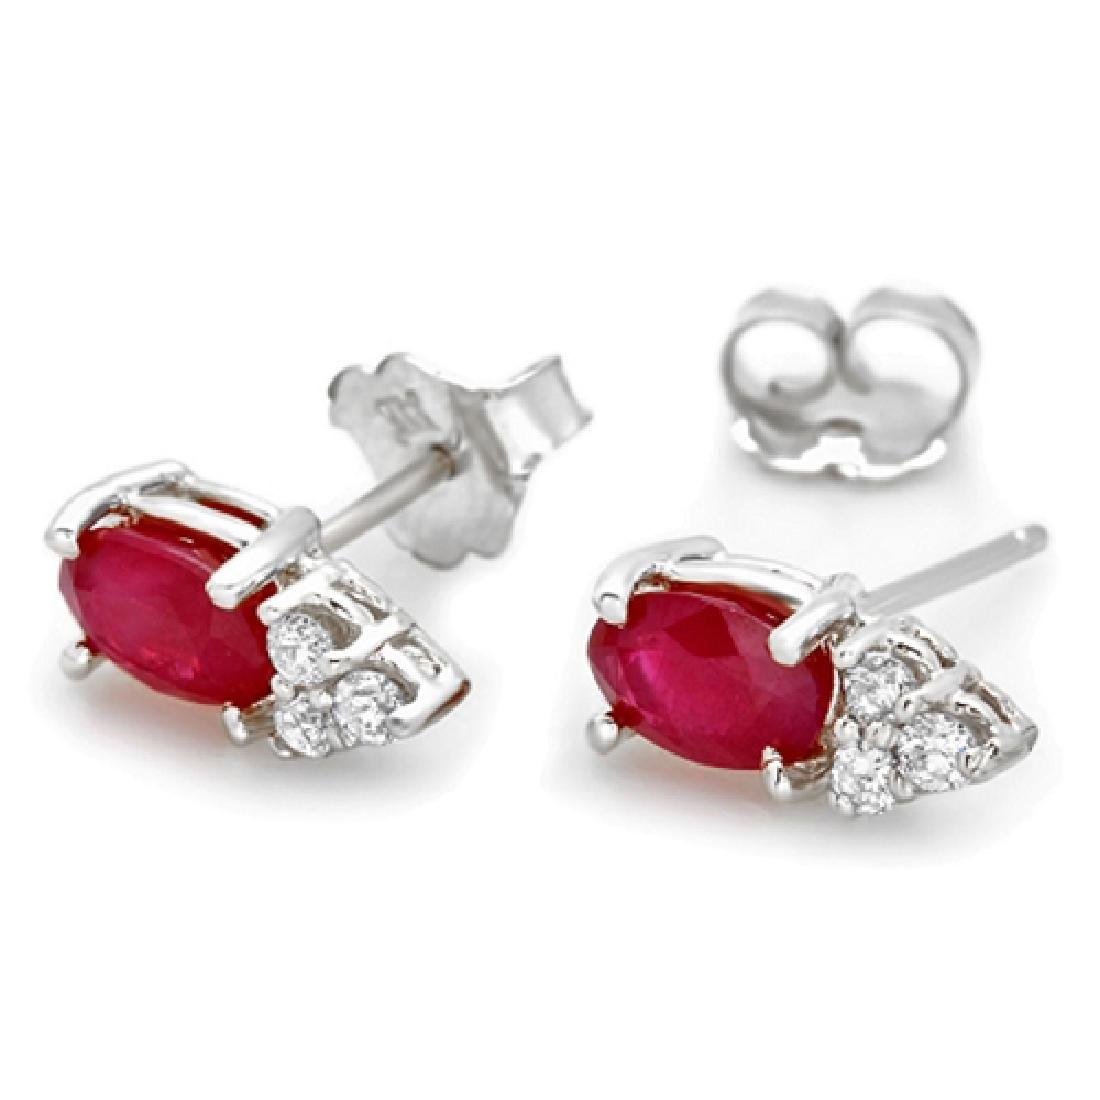 1.44 Carat Natural Ruby 18K Solid White Gold Diamond - 2